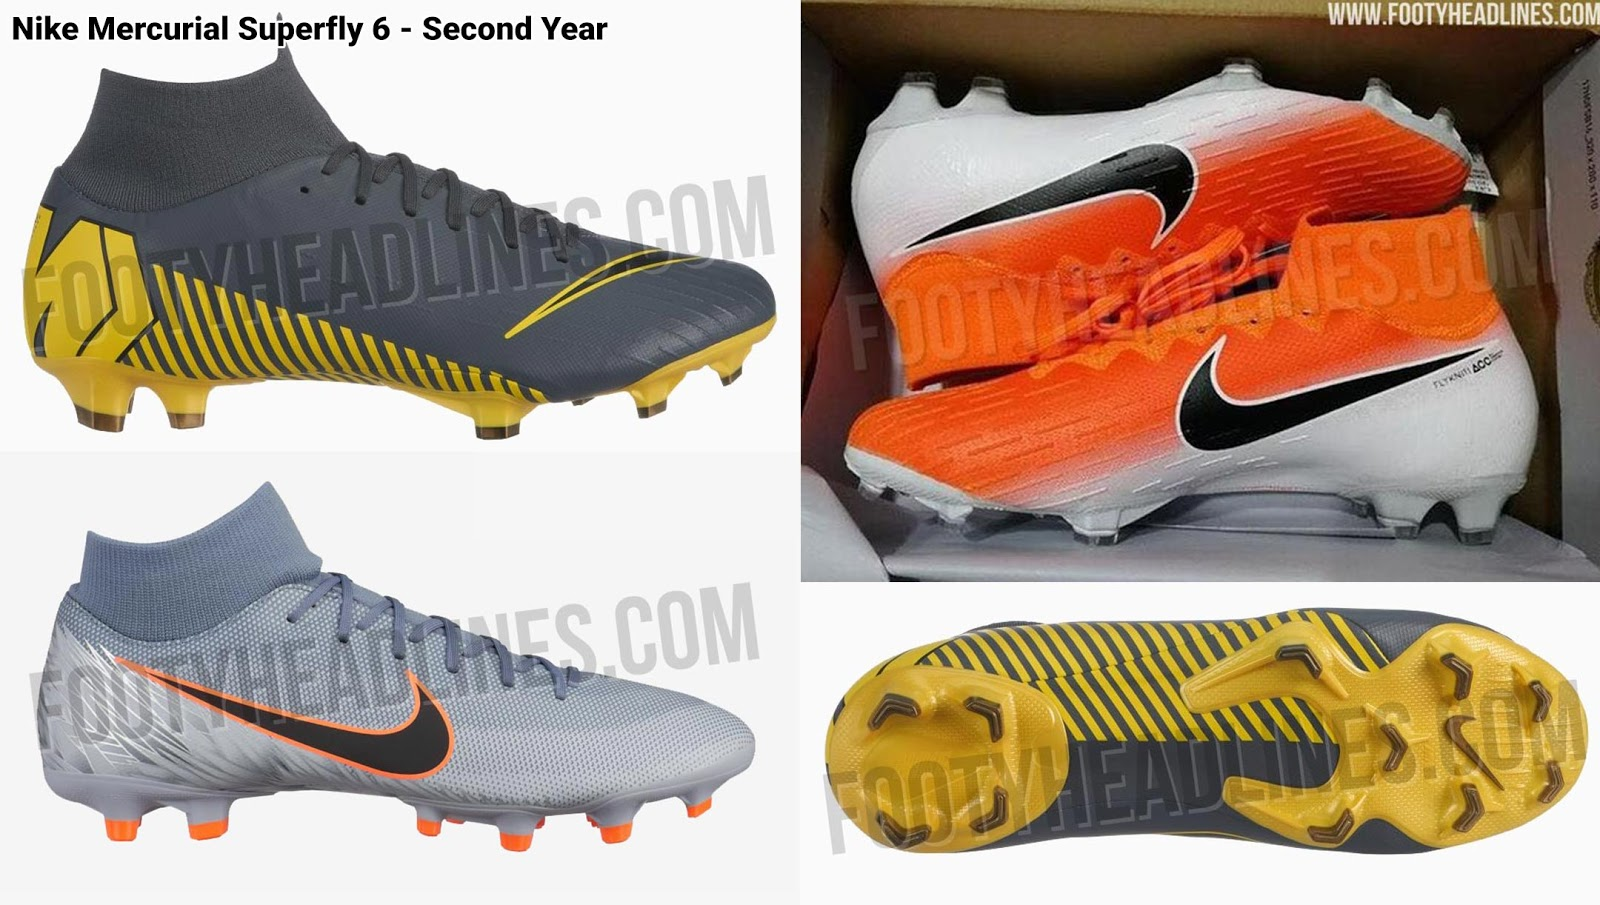 release date 4691f d4890 Updated Nike Mercurial Superfly & Vapor 360 Visual Design ...